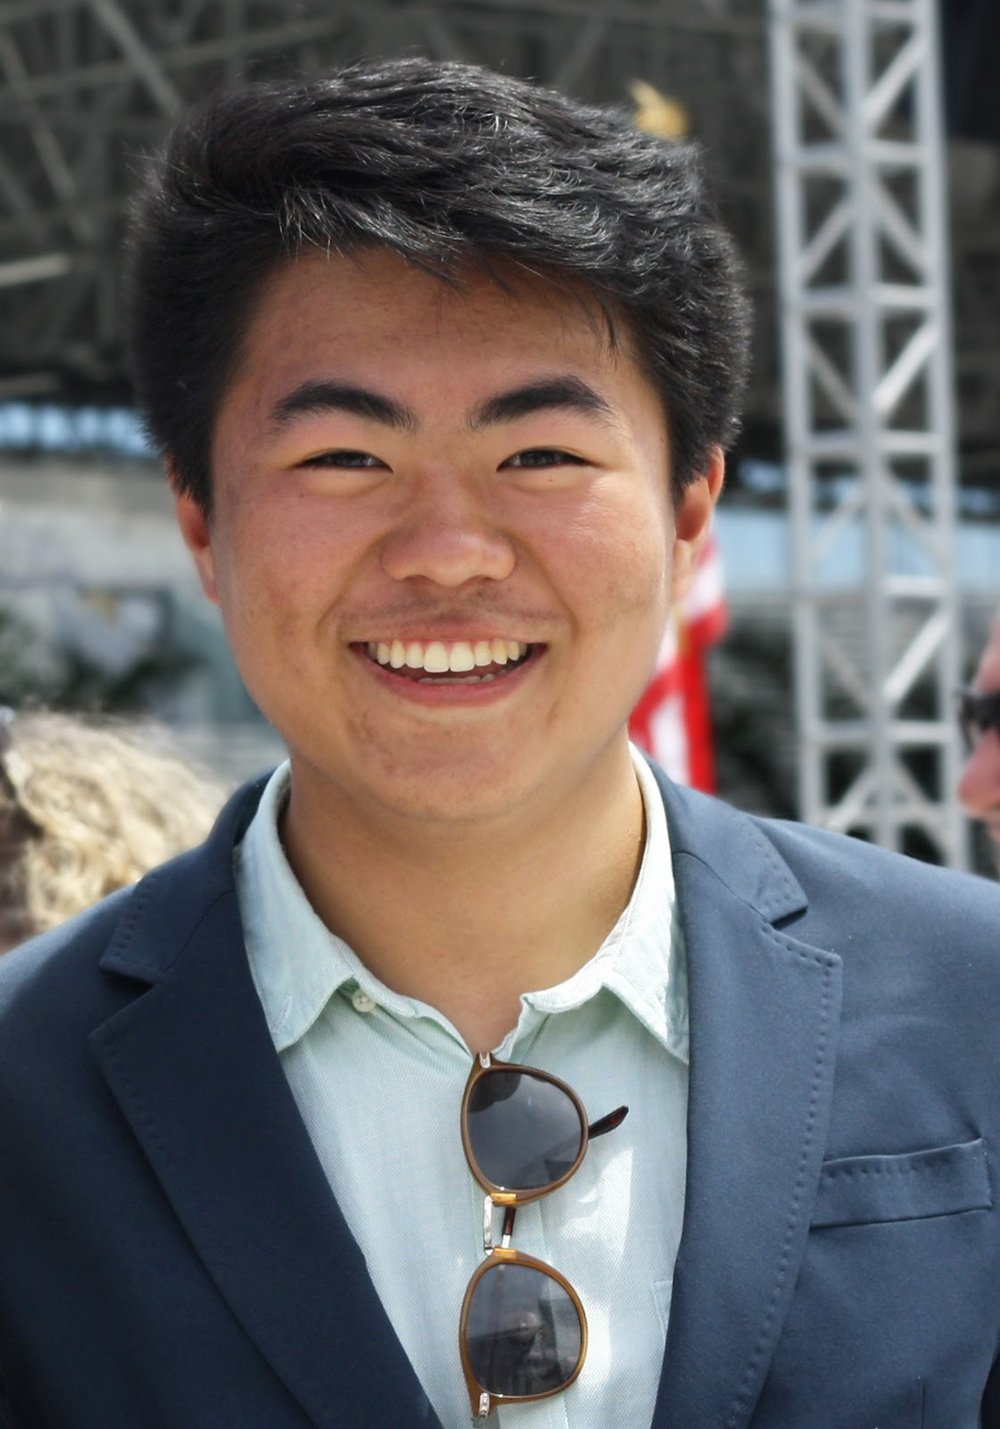 Tommy Li: @lommyeats - Tommy is a rising sophomore at Northwestern studying Computer Science and Cognitive Science. He started a food Instagram in May 2017, and has been documenting what he eats in Evanston and Chicago while interning this summer at a digital marketing agency in River North. Though he can't pick an all-time favorite Evanston restaurant, he can be found at Cupitol and Naf Naf more often than he should be!